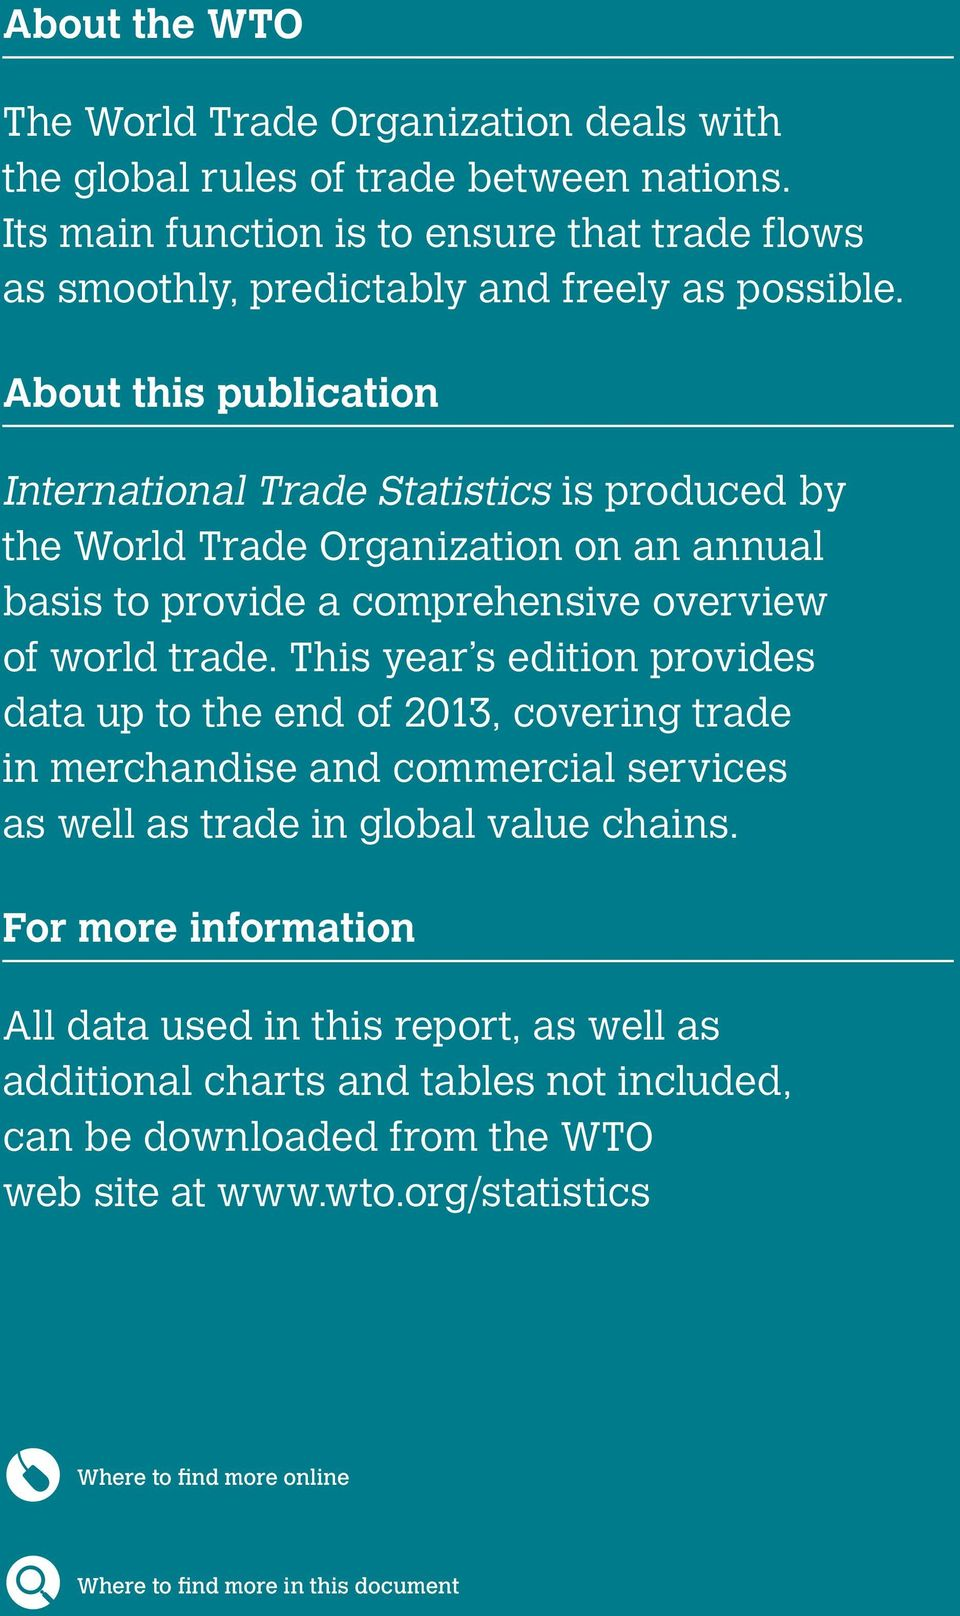 This year s edition provides data up to the end of 2013, covering trade in merchandise and commercial services as well as trade in global value chains.